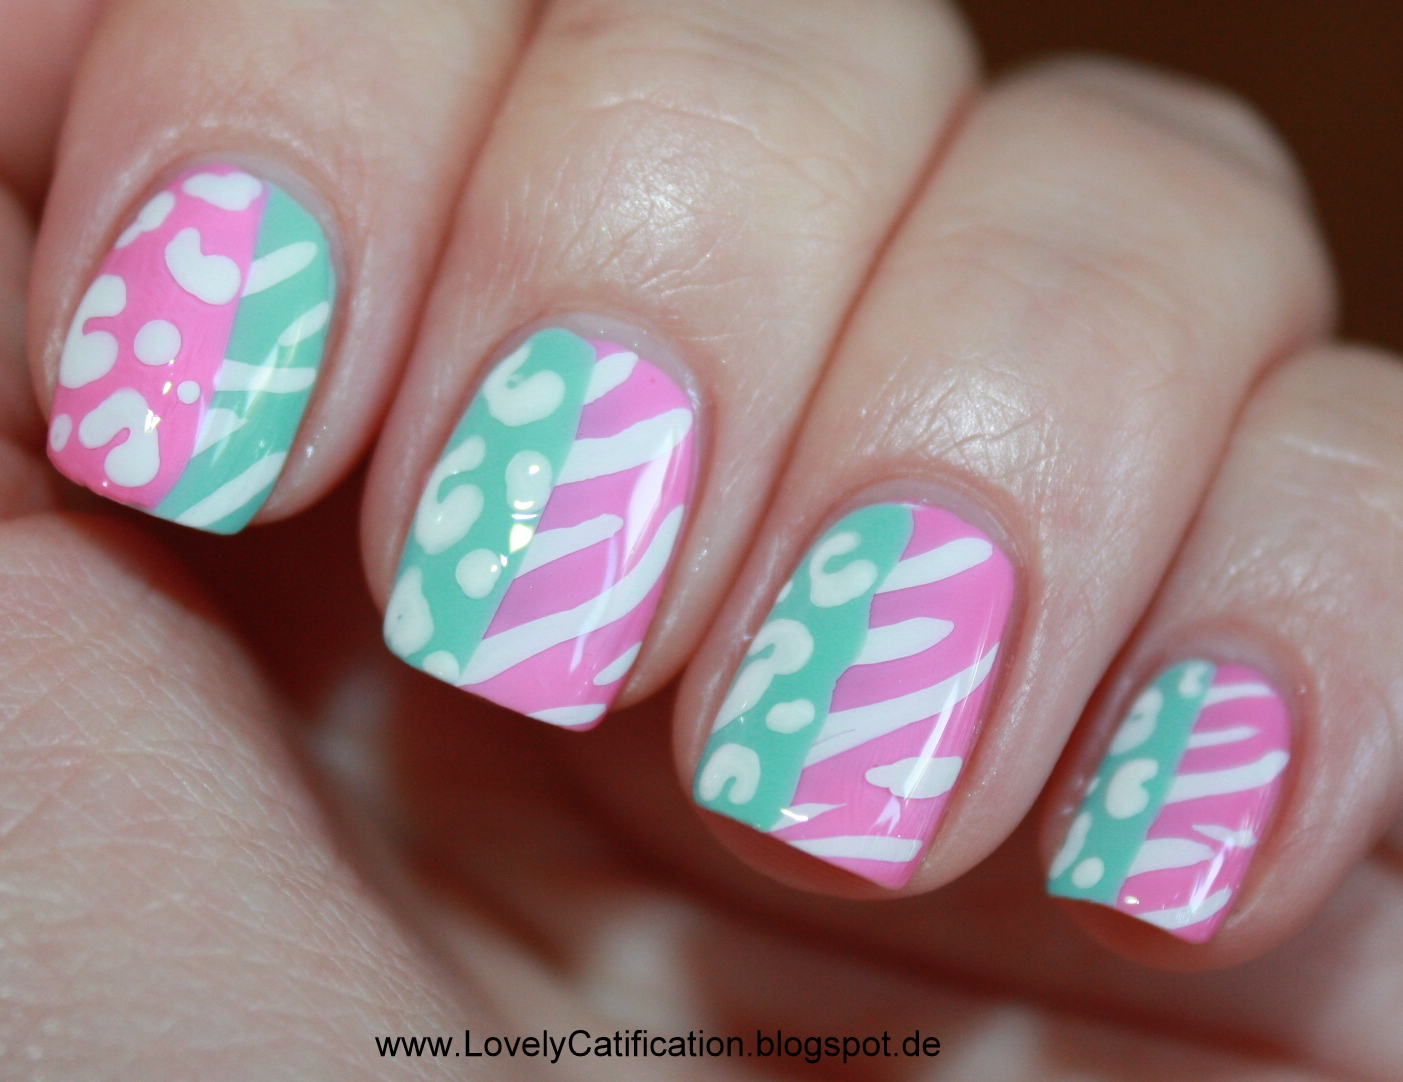 Tolle Nailart im Leoparden Look Nails  - nageldesign leopardenmuster anleitung